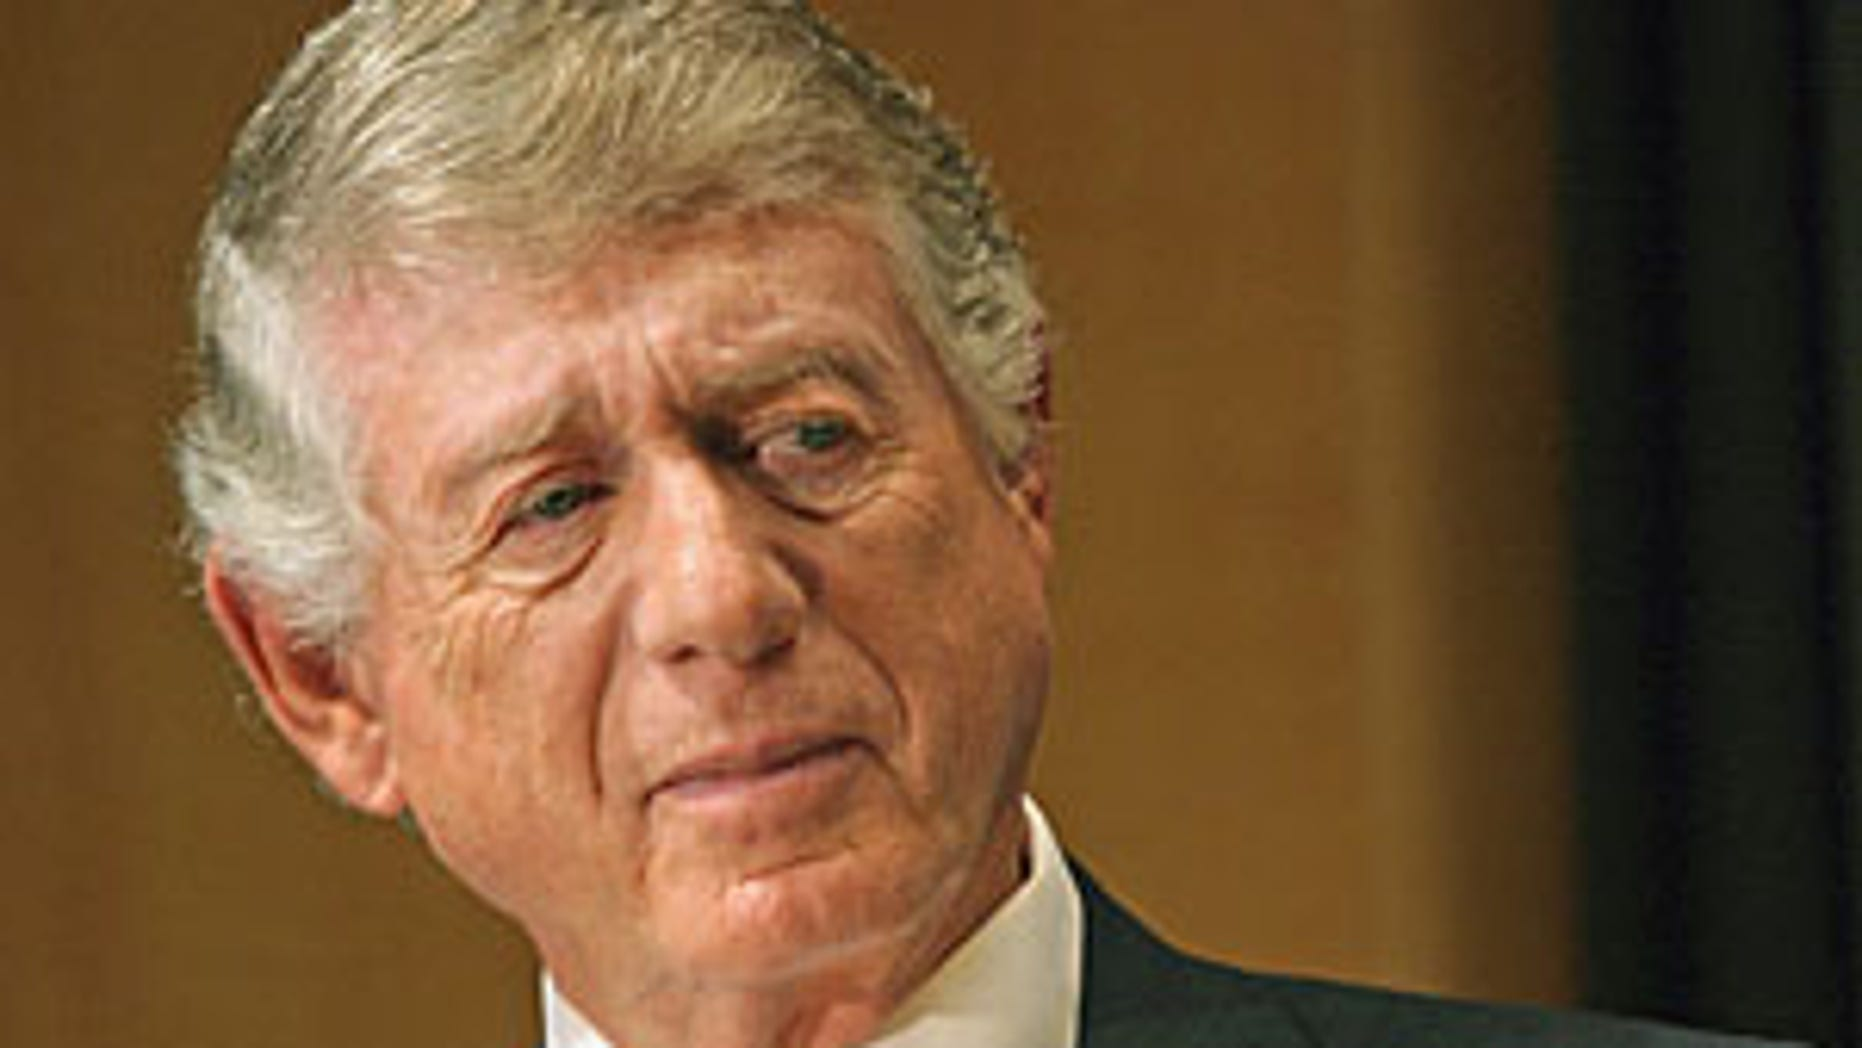 Ted Koppel An Evening With Ted Koppel Museum of Television and Radio Beverly Hills, CA USA September 5, 2006 Photo by Kevin Parry/WireImage.com  To license this image (10235214), contact WireImage.com